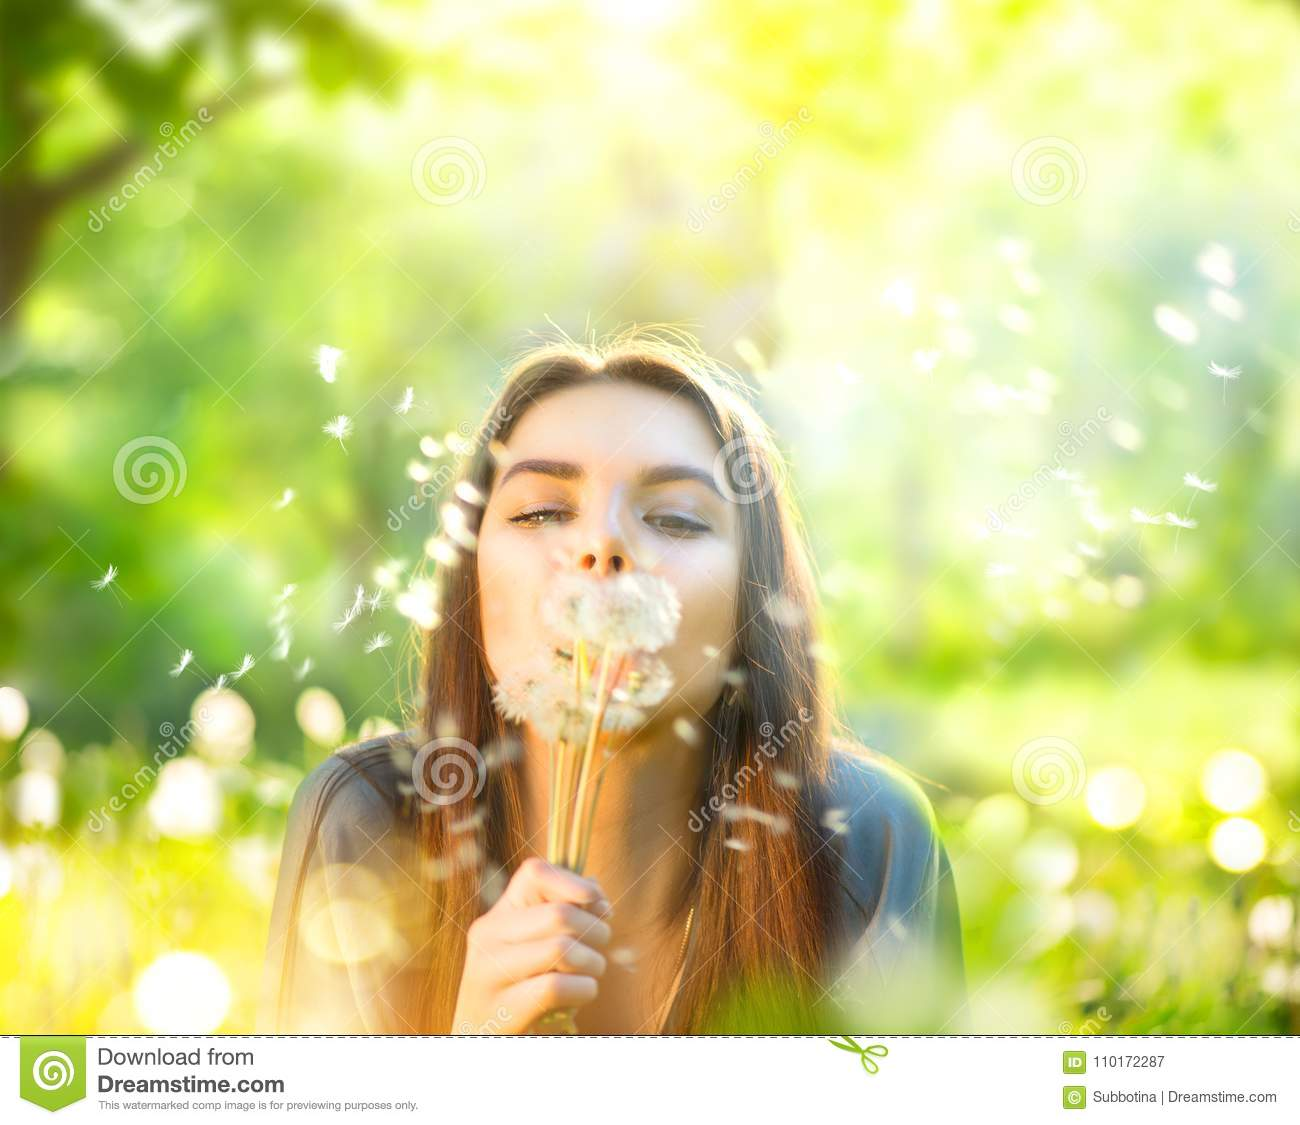 Beautiful young woman lying on green grass and blowing dandelions